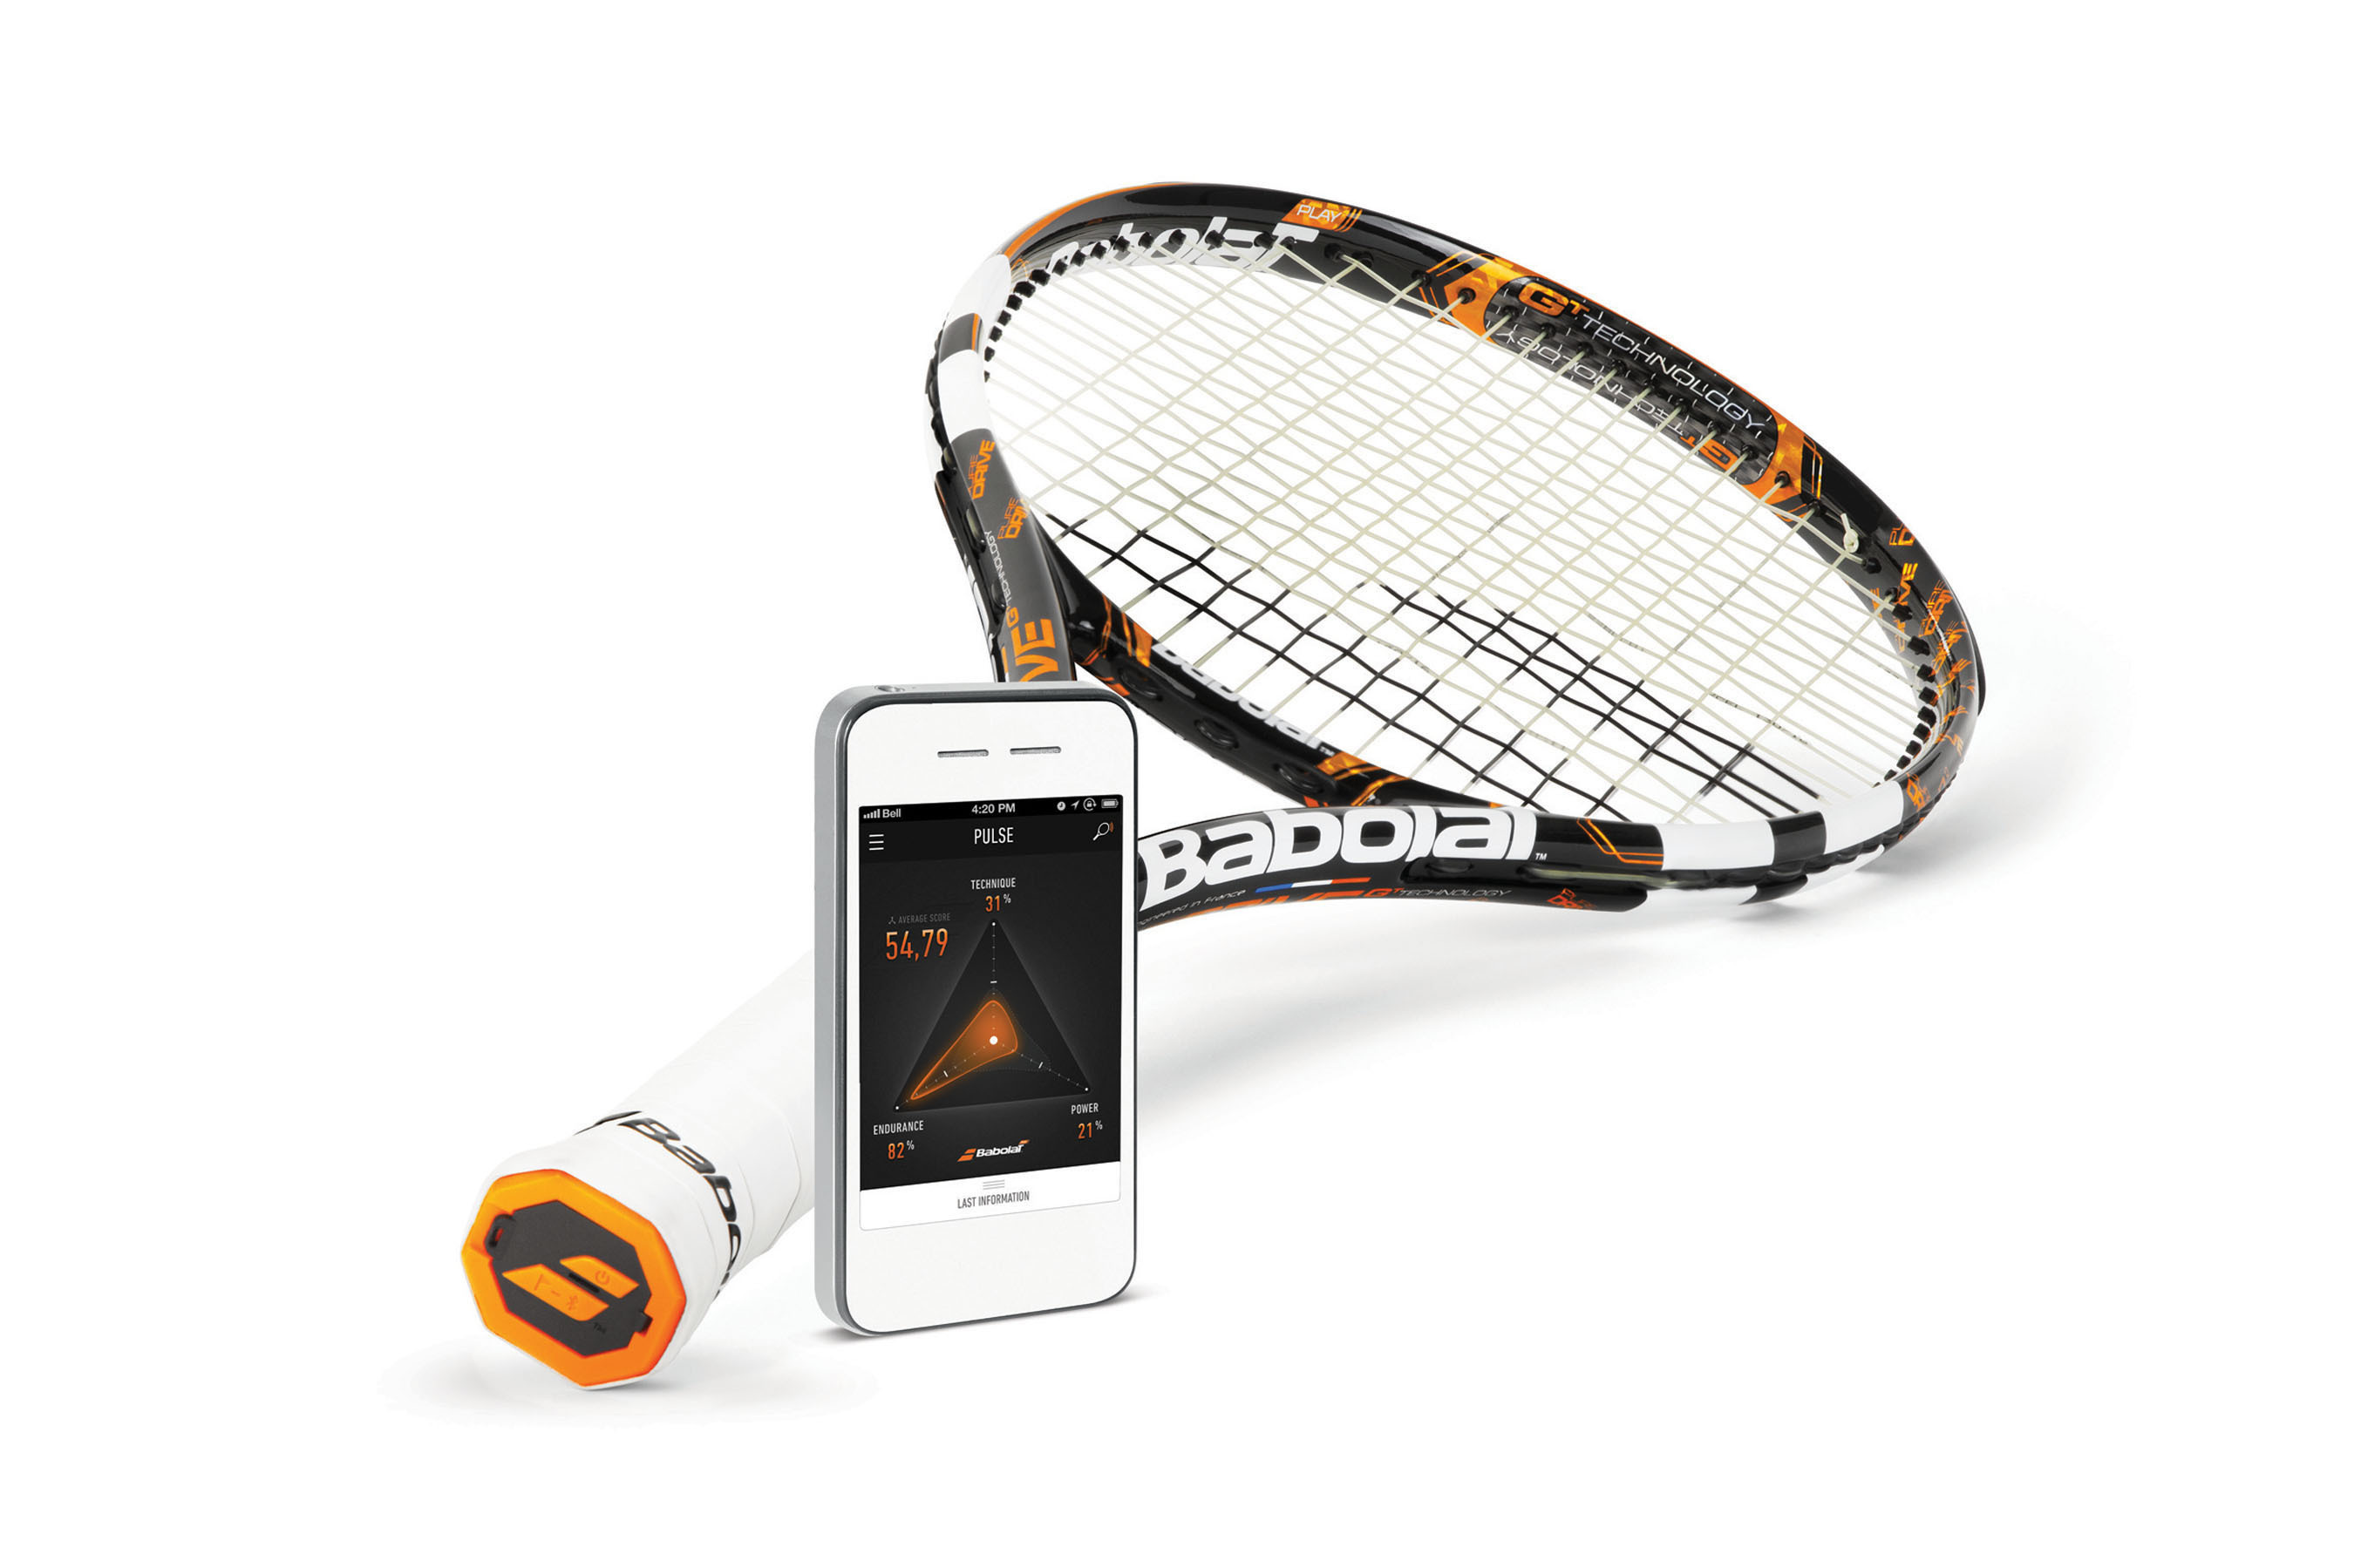 Babolat Launches Babolat Play Pure Drive Connected Racquet, December 2013